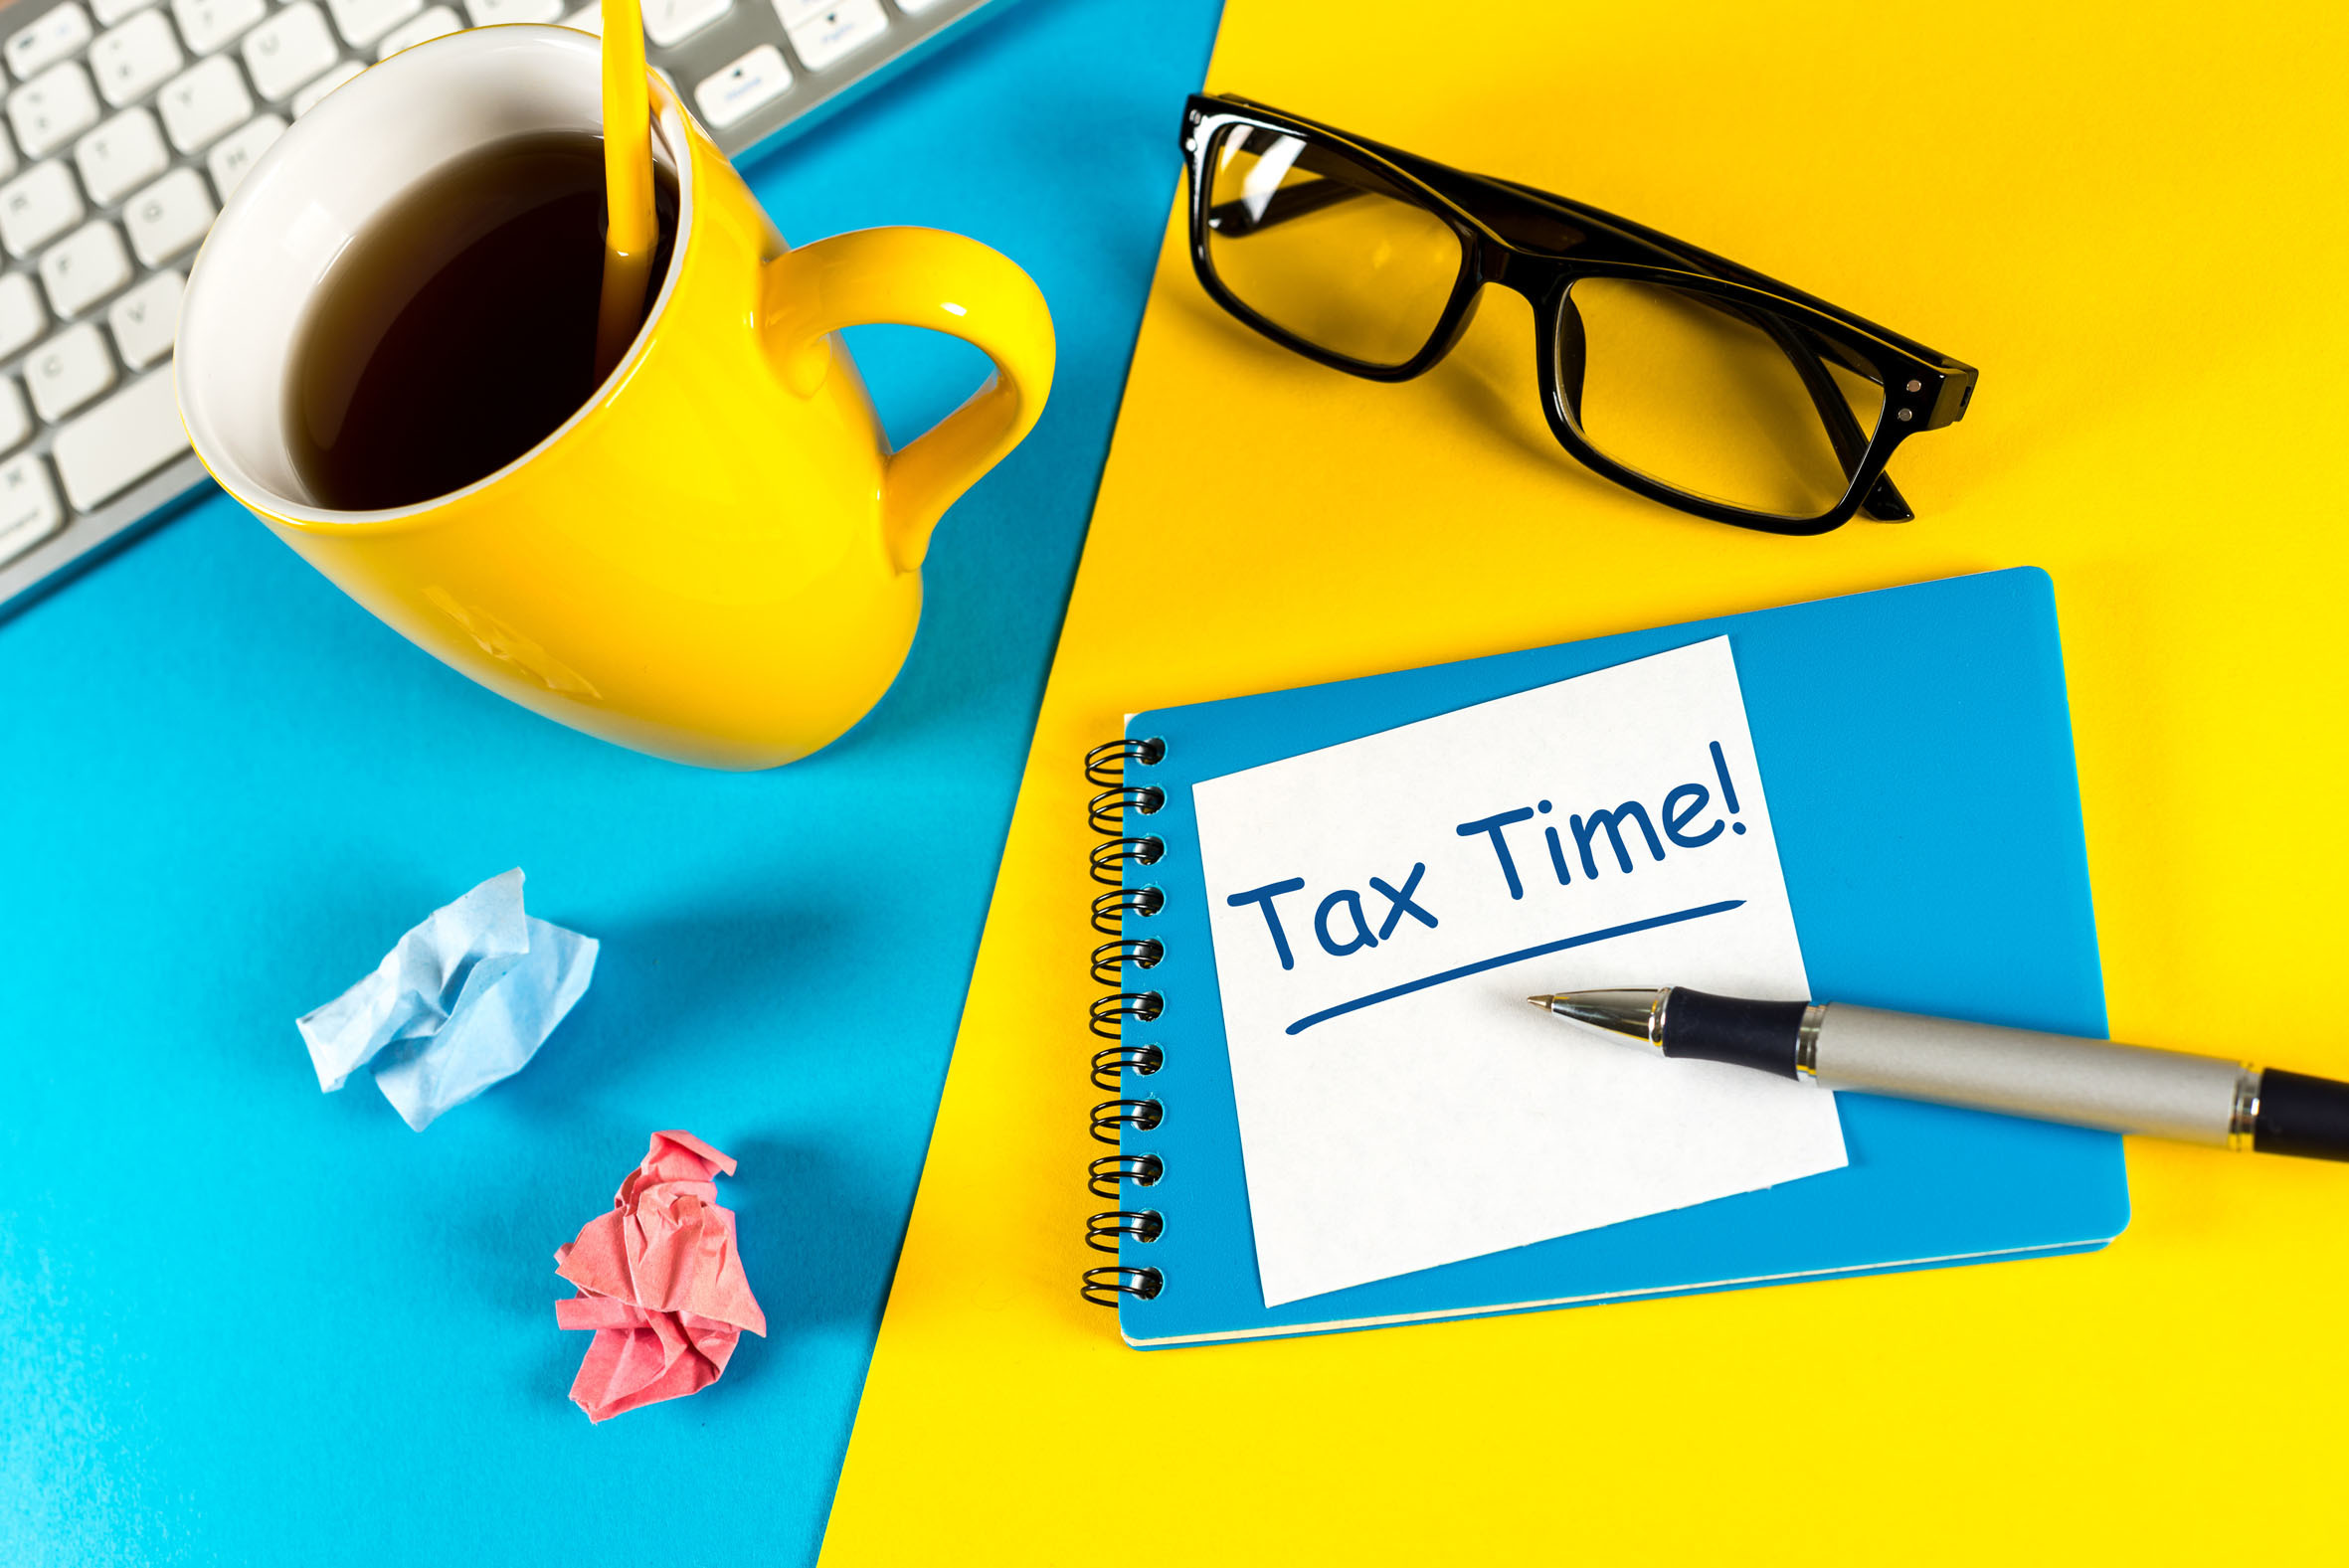 Get organised with your taxes!